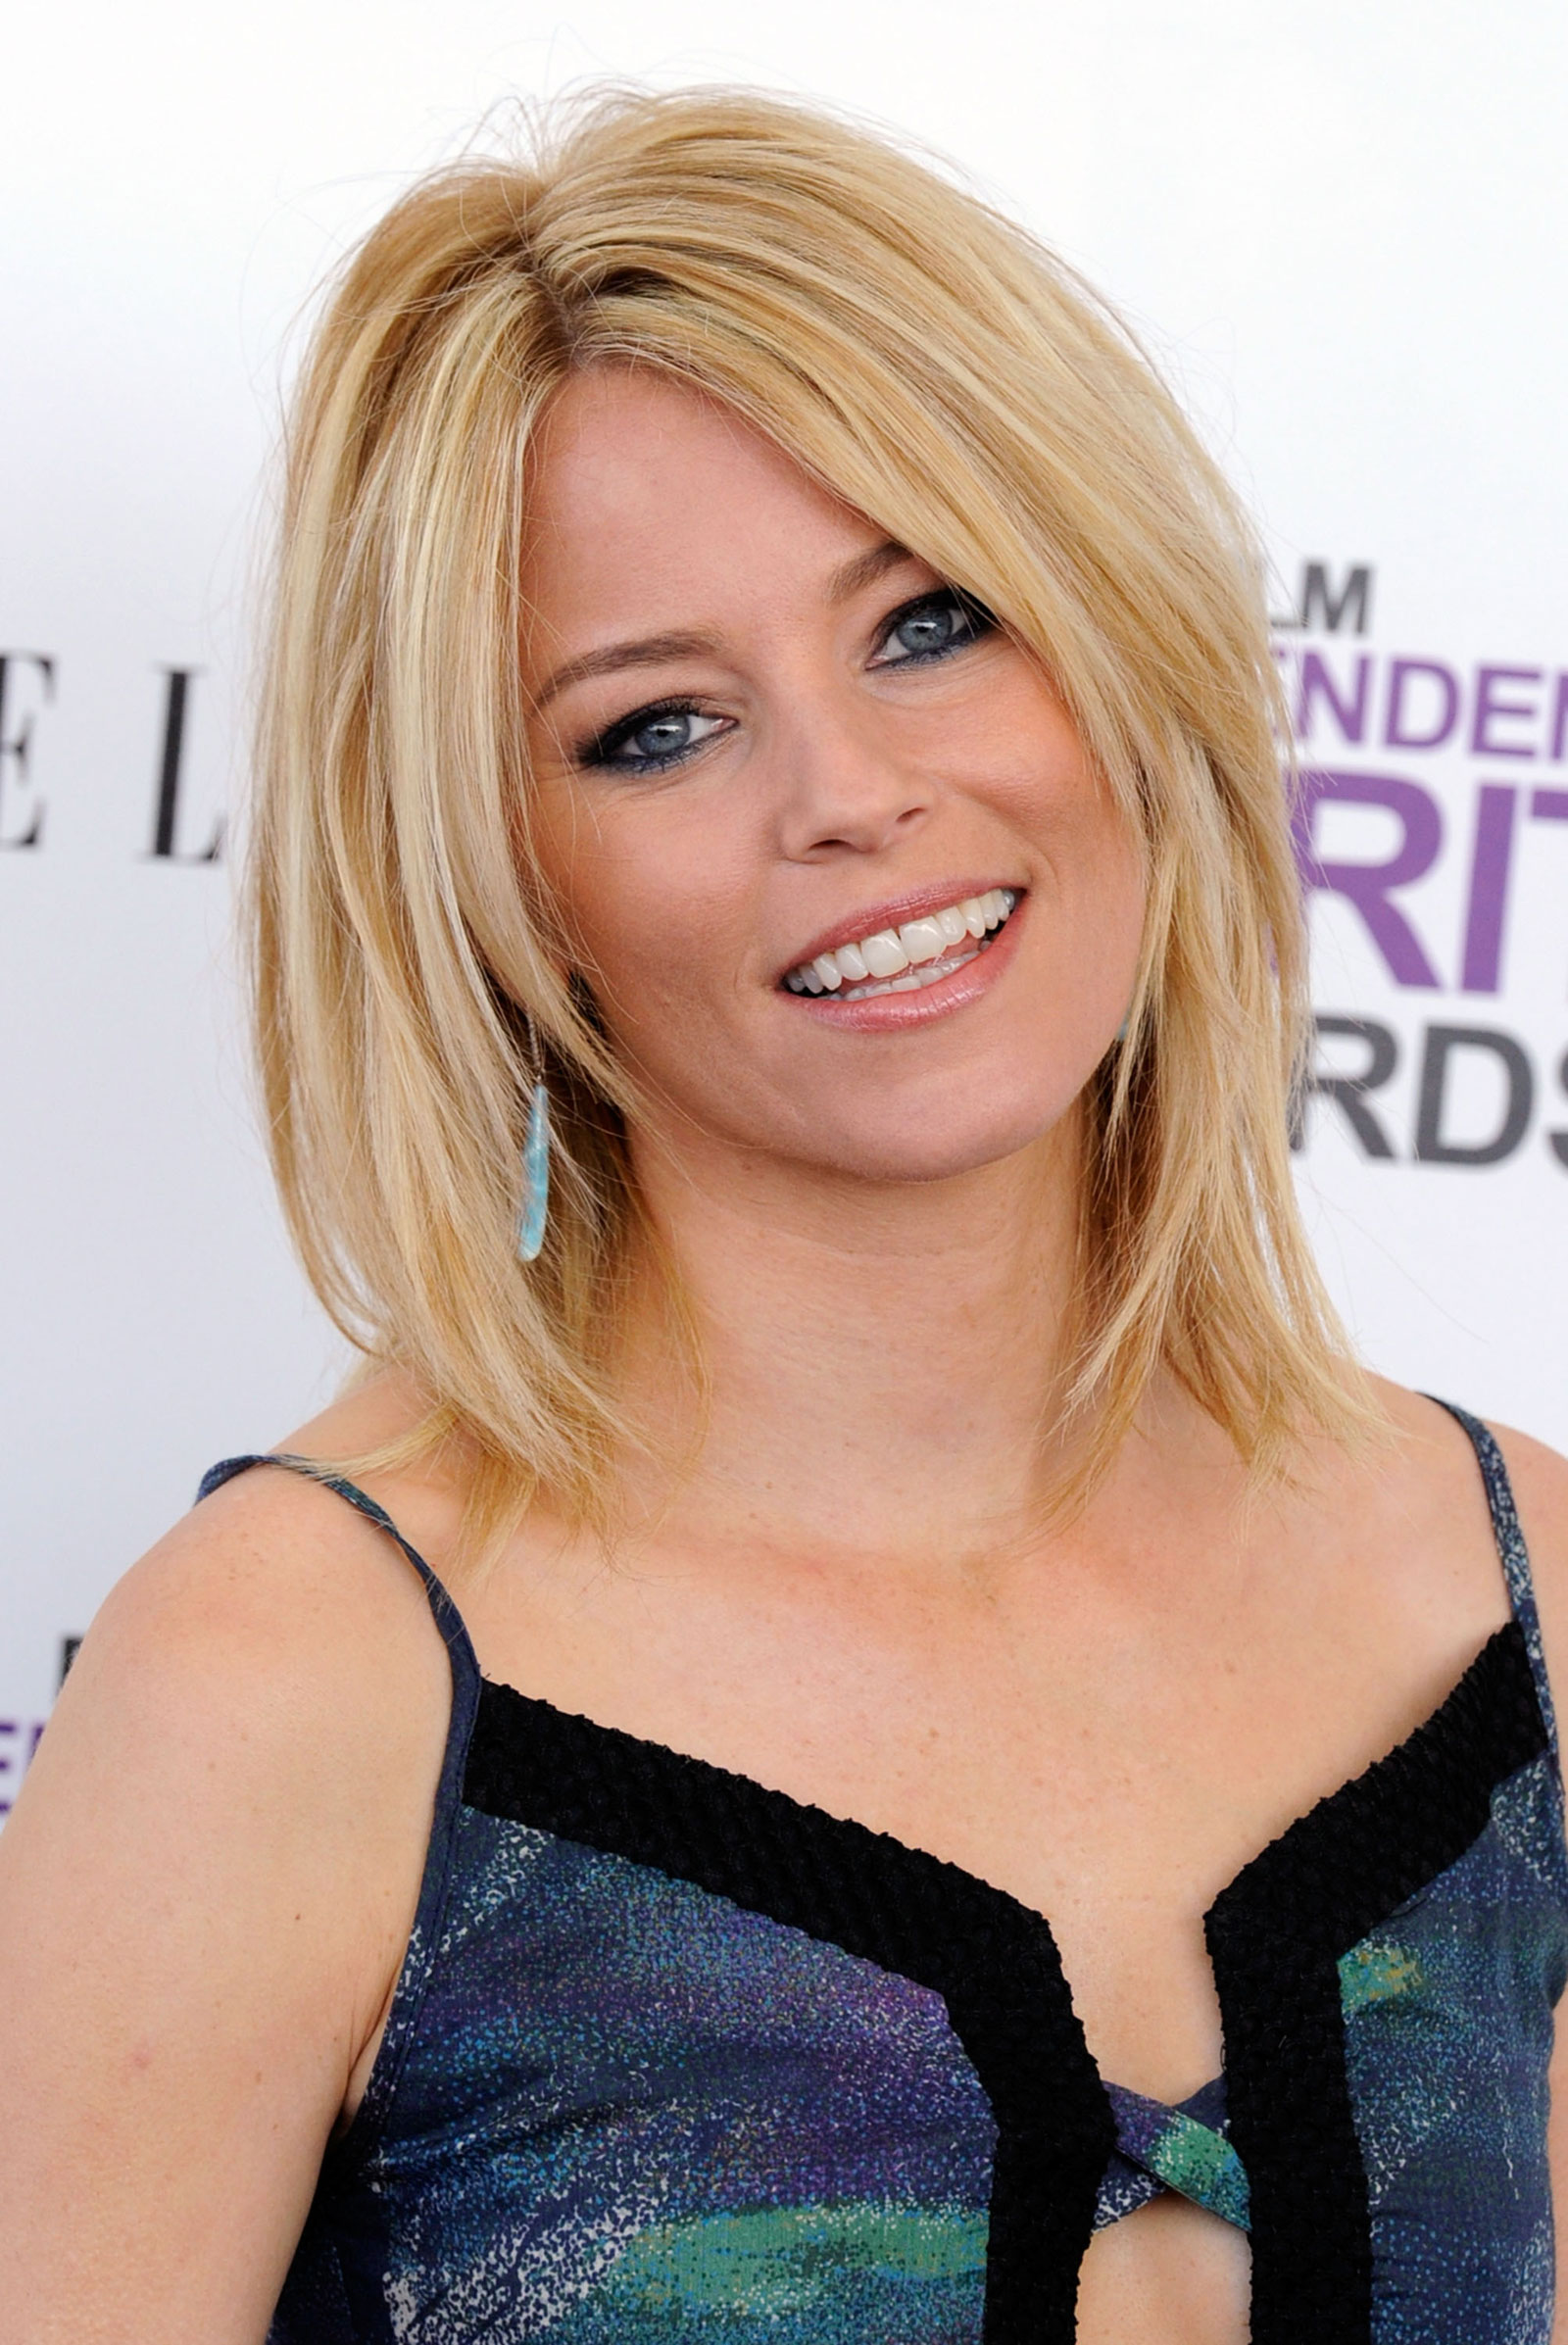 elizabeth banks movies - photo #35